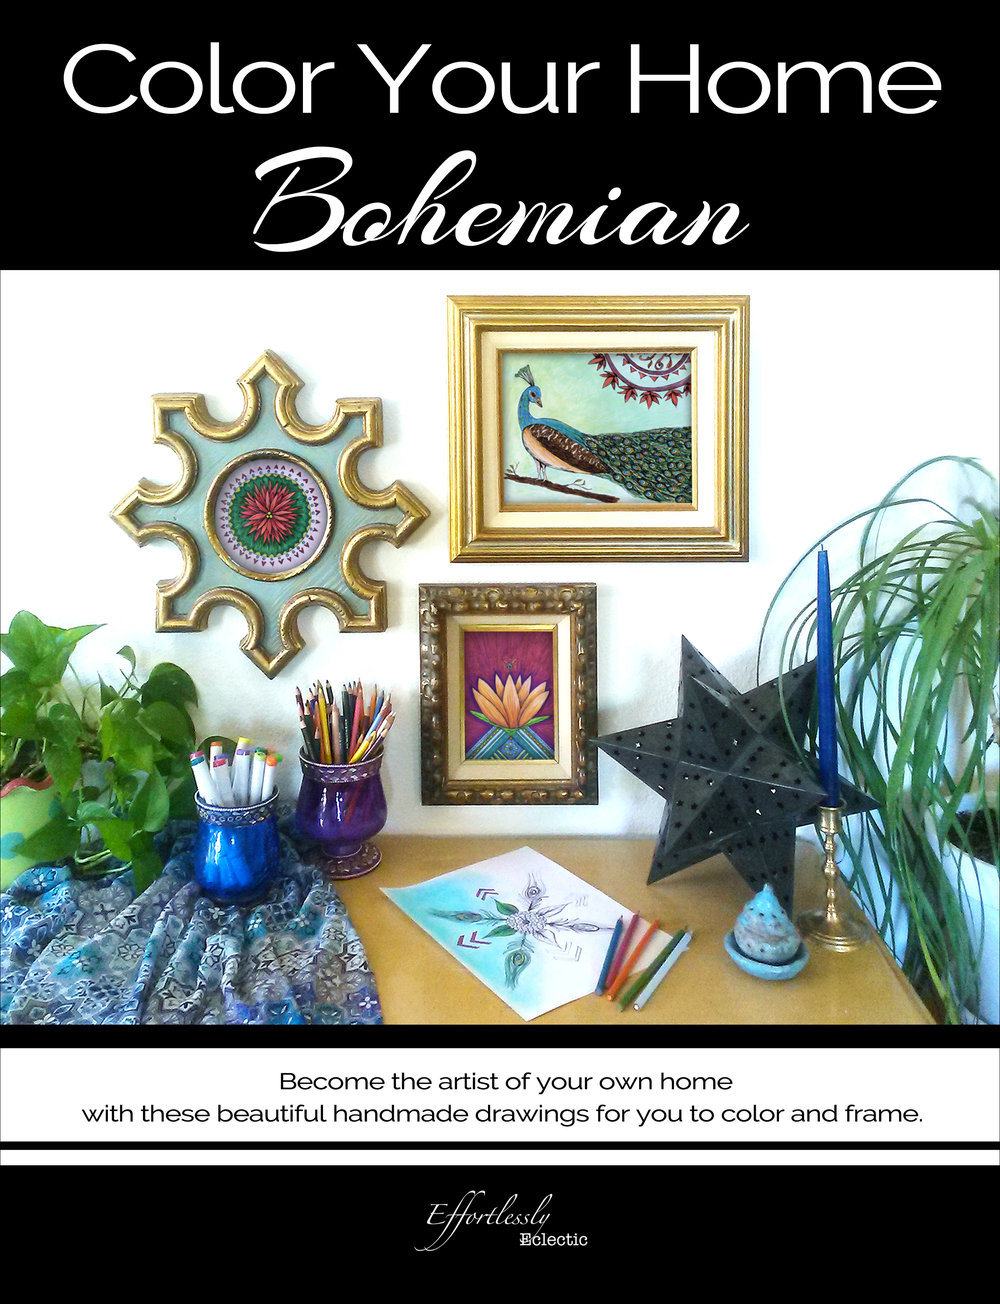 Color Your Home Bohemian - Effortlessly Eclectic